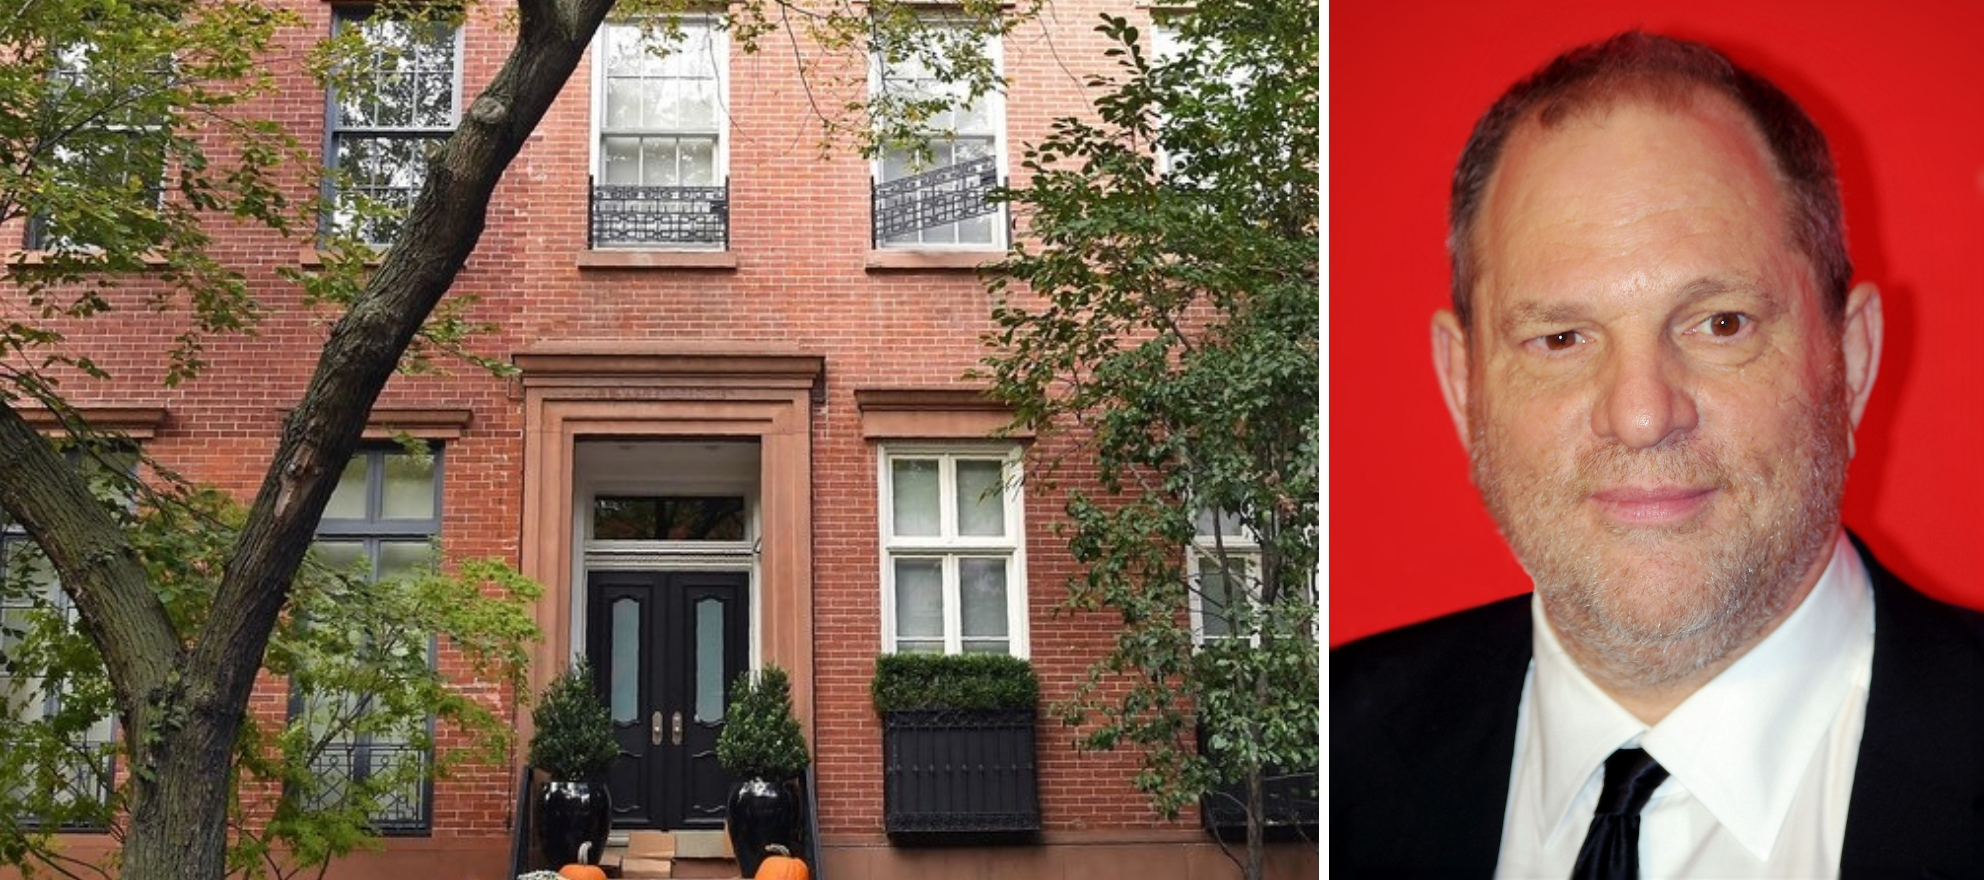 Gone without a trace: New owners strip all signs of Harvey Weinstein from NYC townhouse